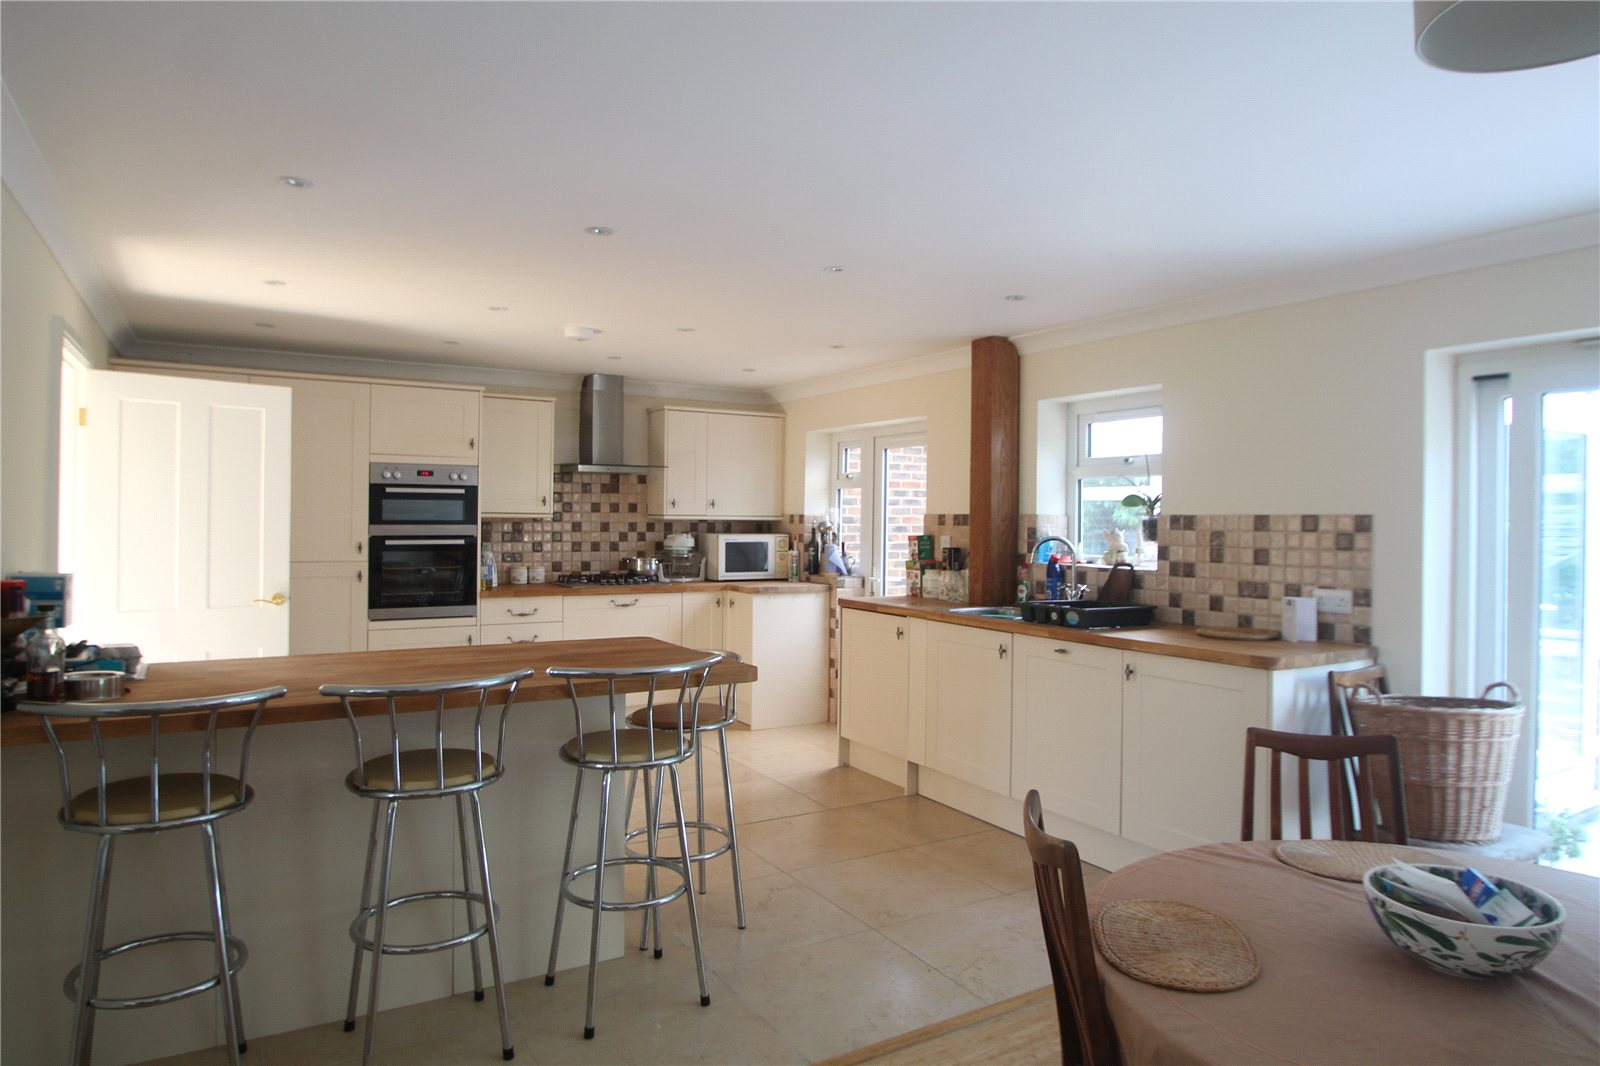 3 Bedrooms Detached House for sale in Romney Way Tonbridge Kent TN10